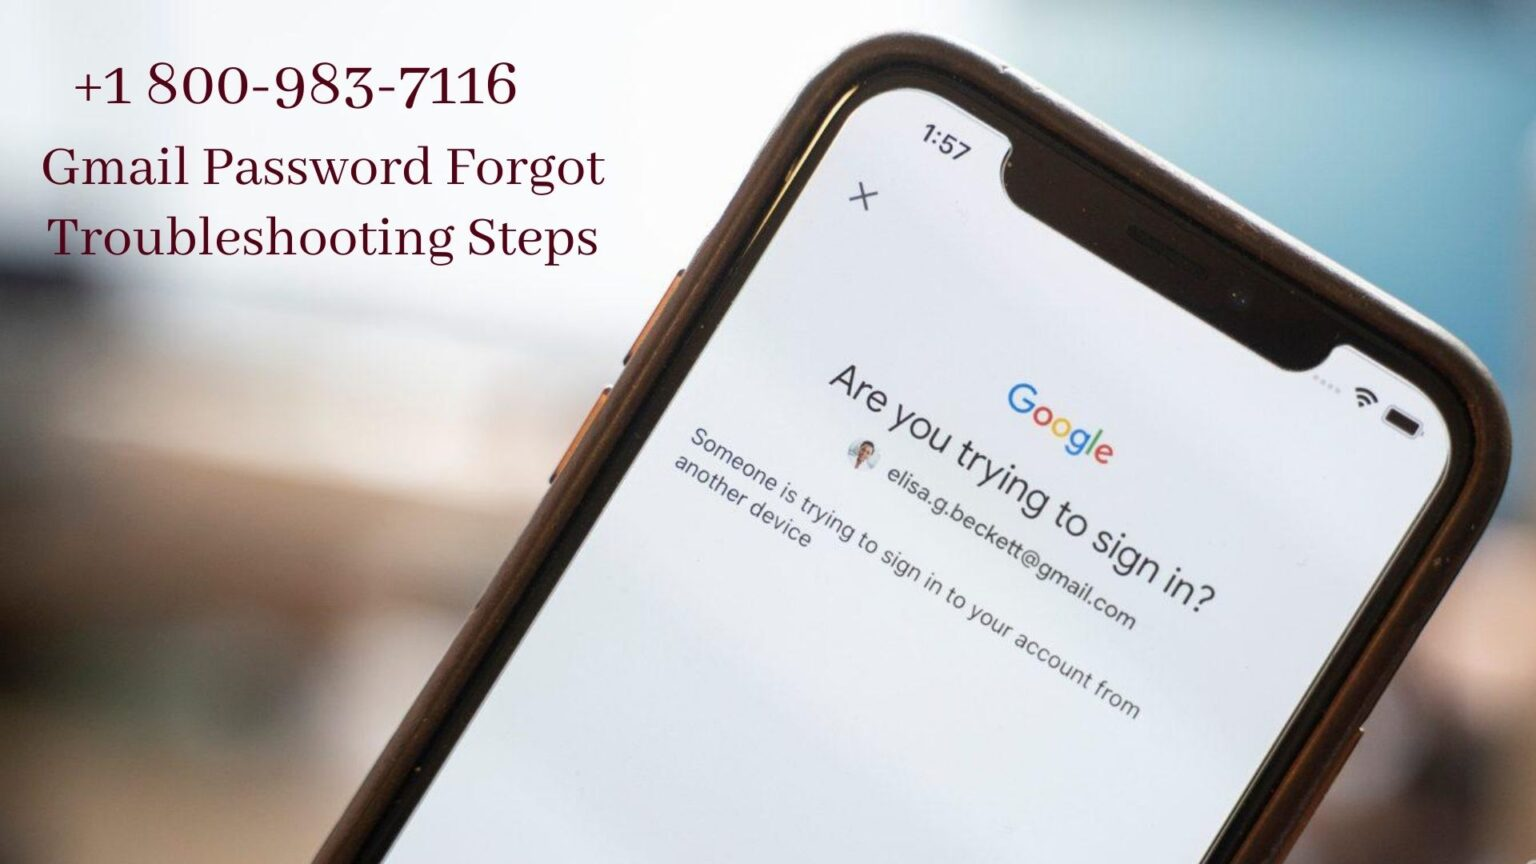 How to recover if I forgot my gmail password? 1 800-983-7116